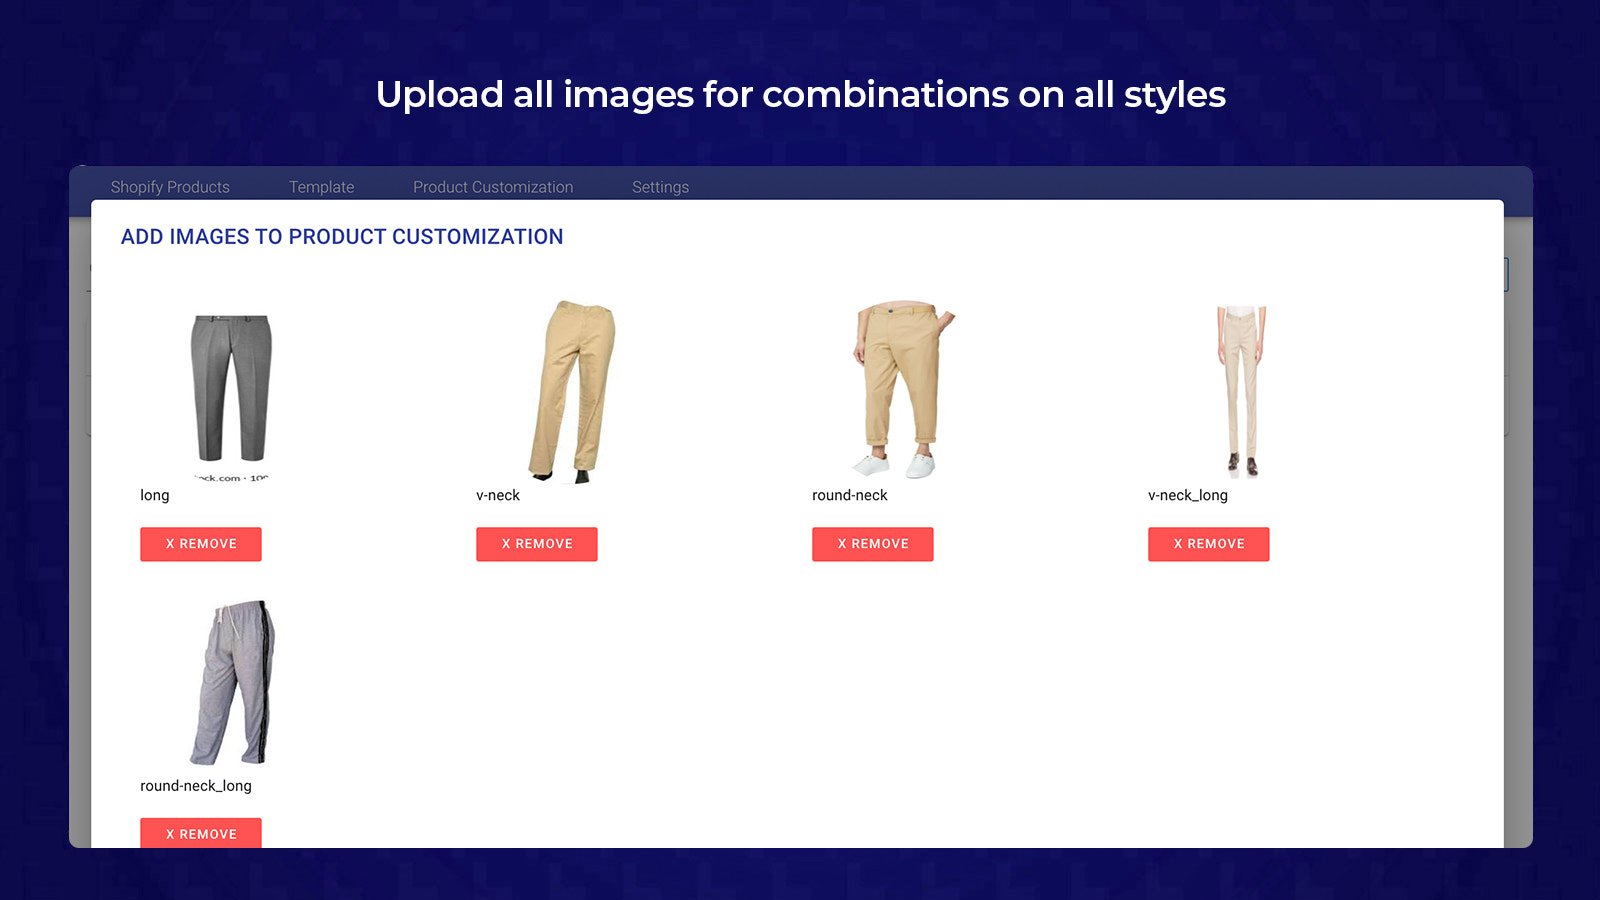 5- Upload all images for combinations on all styles